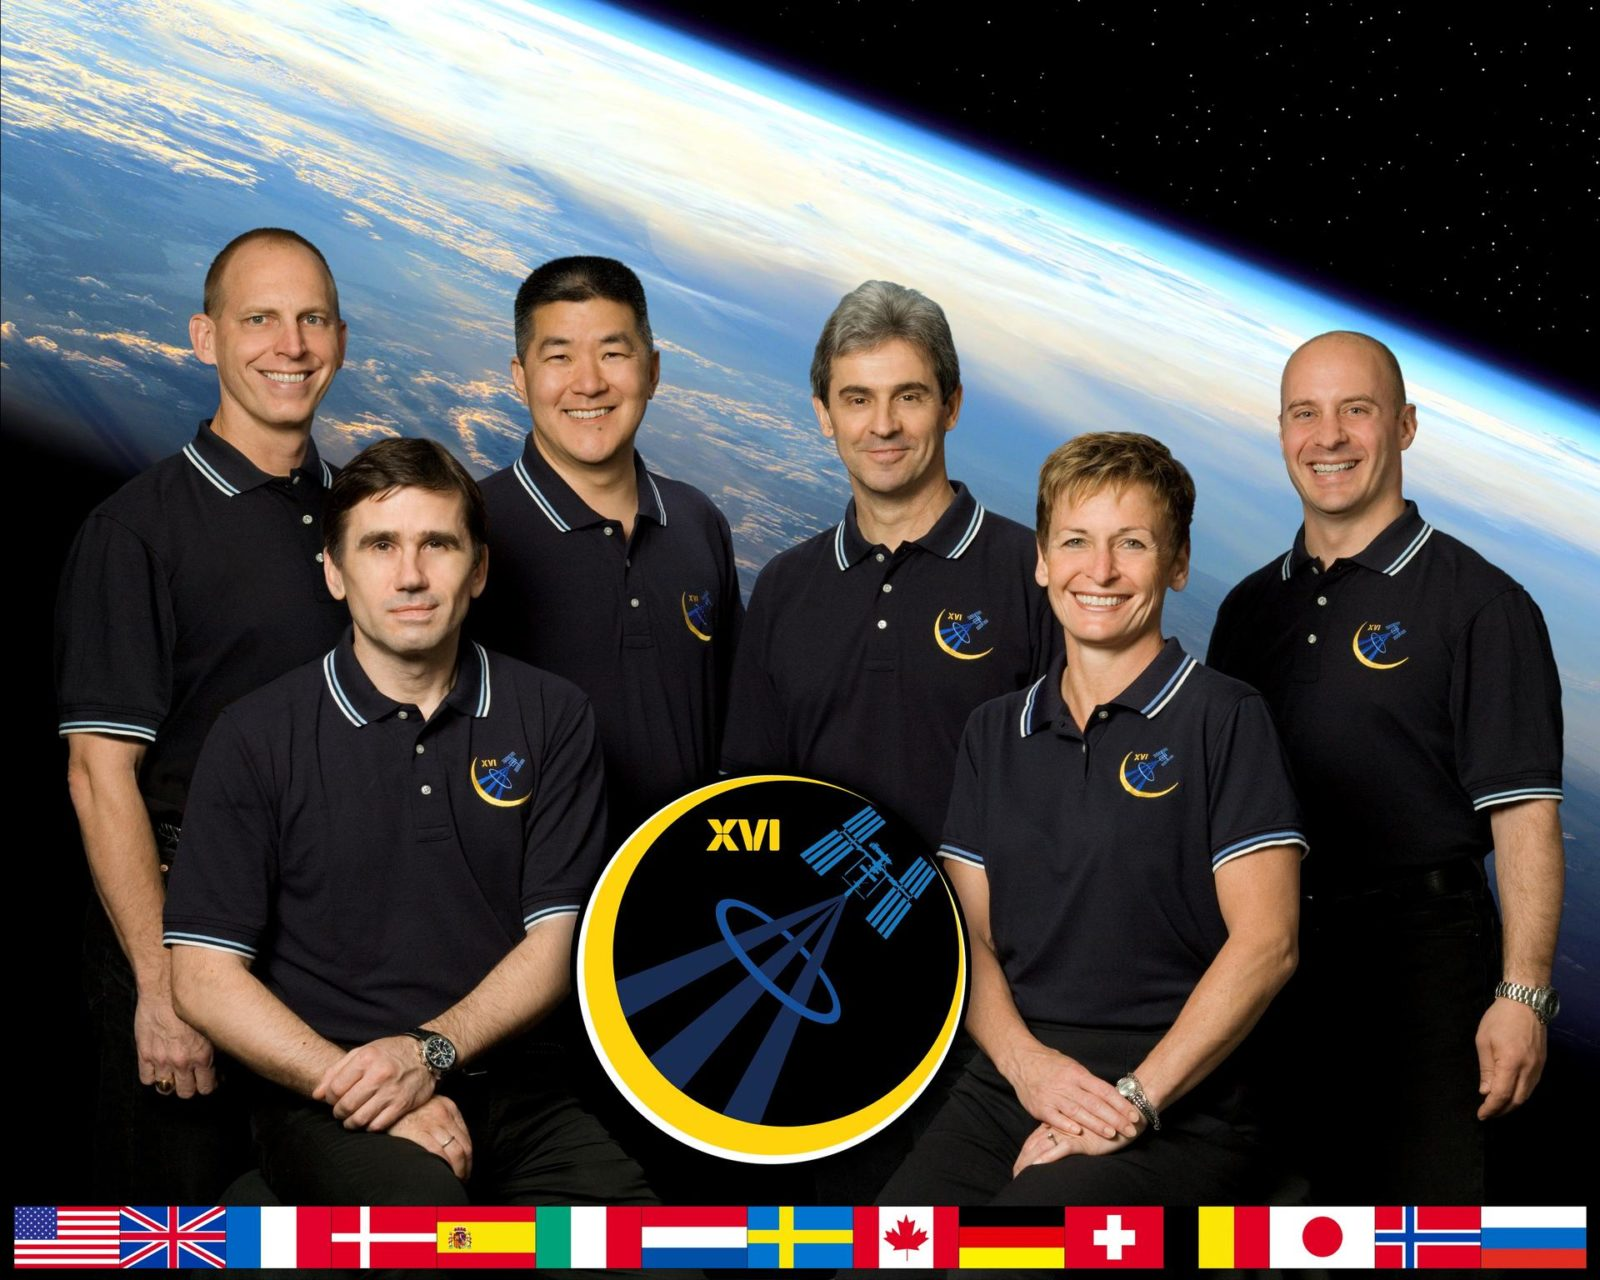 ISS016-S-002F (June 2007) --- This crew portrait shows the variety of crewmembers who will occupy the International Space Station during Expedition 16. Astronaut Peggy Whitson (front row, right), station commander; and Russia's Federal Space Agency cosmonaut Yuri Malenchenko (front row, left), flight engineer and Soyuz commander, will join NASA astronaut Clay Anderson (back row, left), flight engineer, in October after launching from the Baikonur Cosmodrome in Kazakhstan on the Soyuz TMA-11 spacecraft. Anderson will be replaced in October by astronaut Dan Tani (back row, second from left), flight engineer, who will yield his place in December to Leopold Eyharts of the European Space Agency (back row, third from left). Eyharts will be replaced in February 2008 by astronaut Garrett Reisman (back row, far right), flight engineer. iss016-s-002f